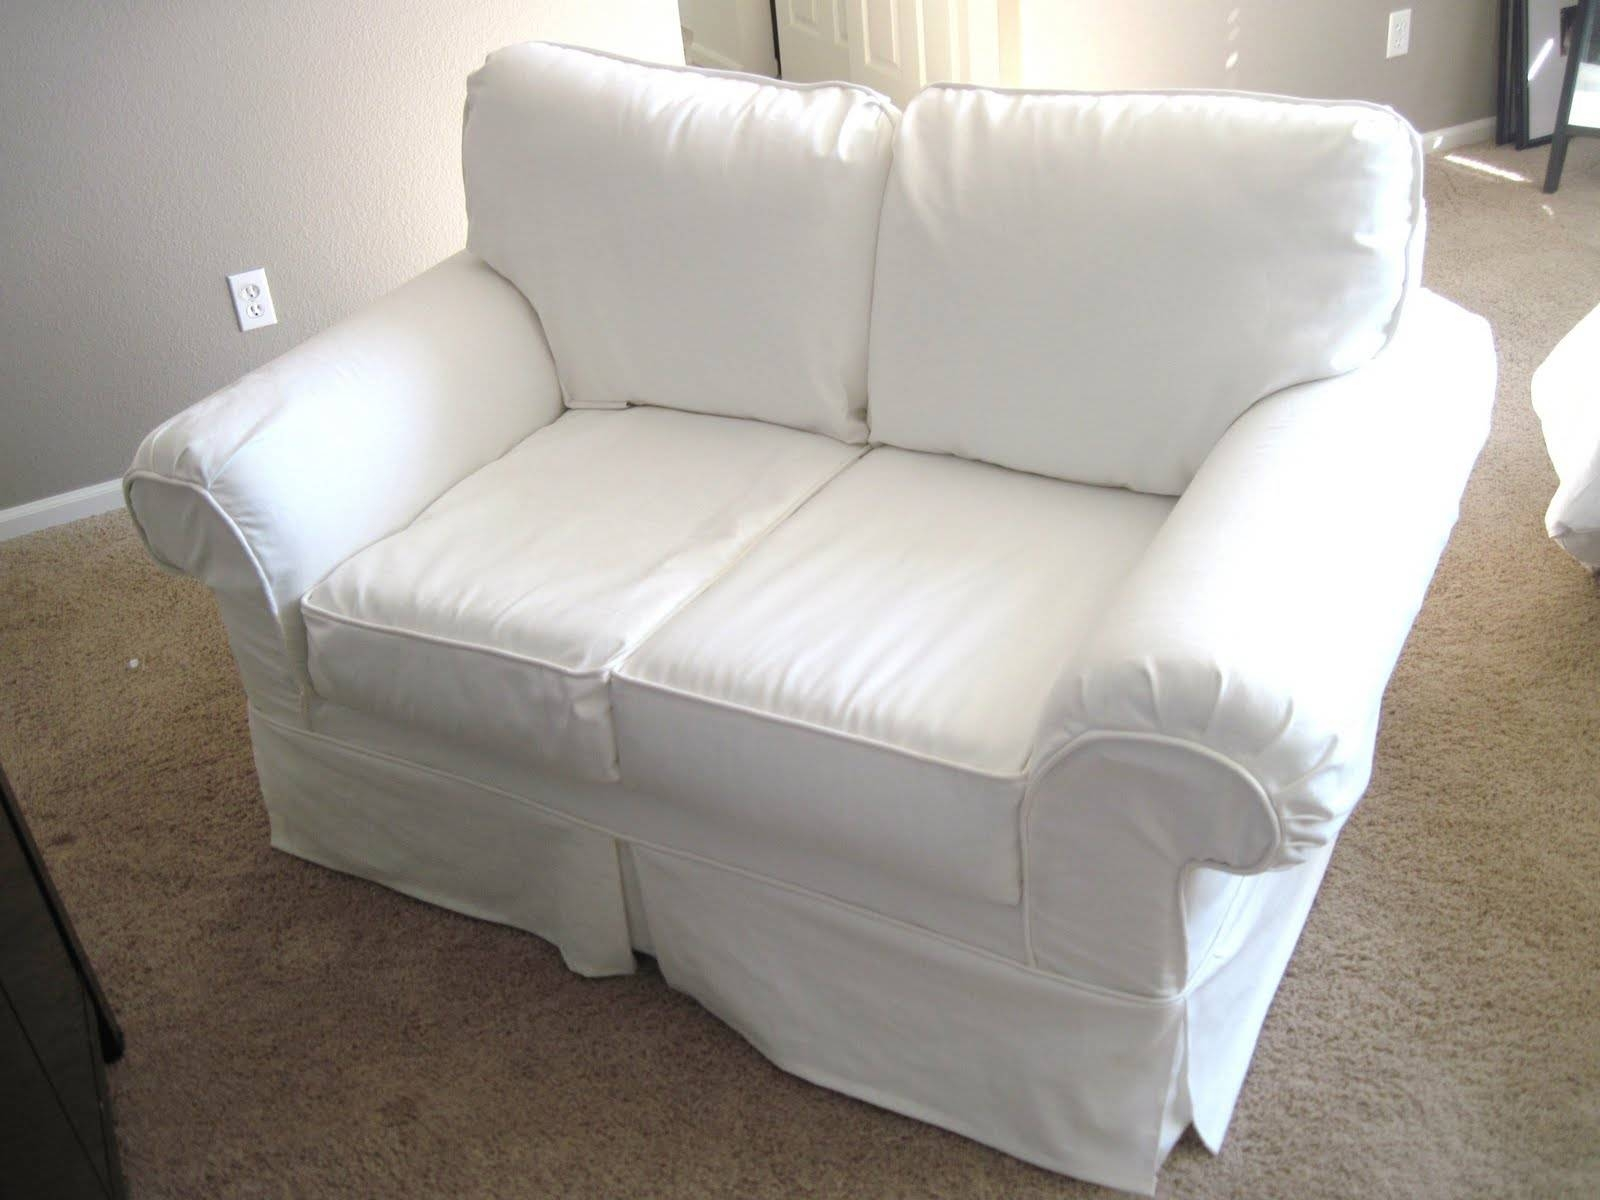 Furniture: Couch Covers At Walmart To Make Your Furniture Stylish within Slipcovers For Sofas And Chairs (Image 13 of 30)